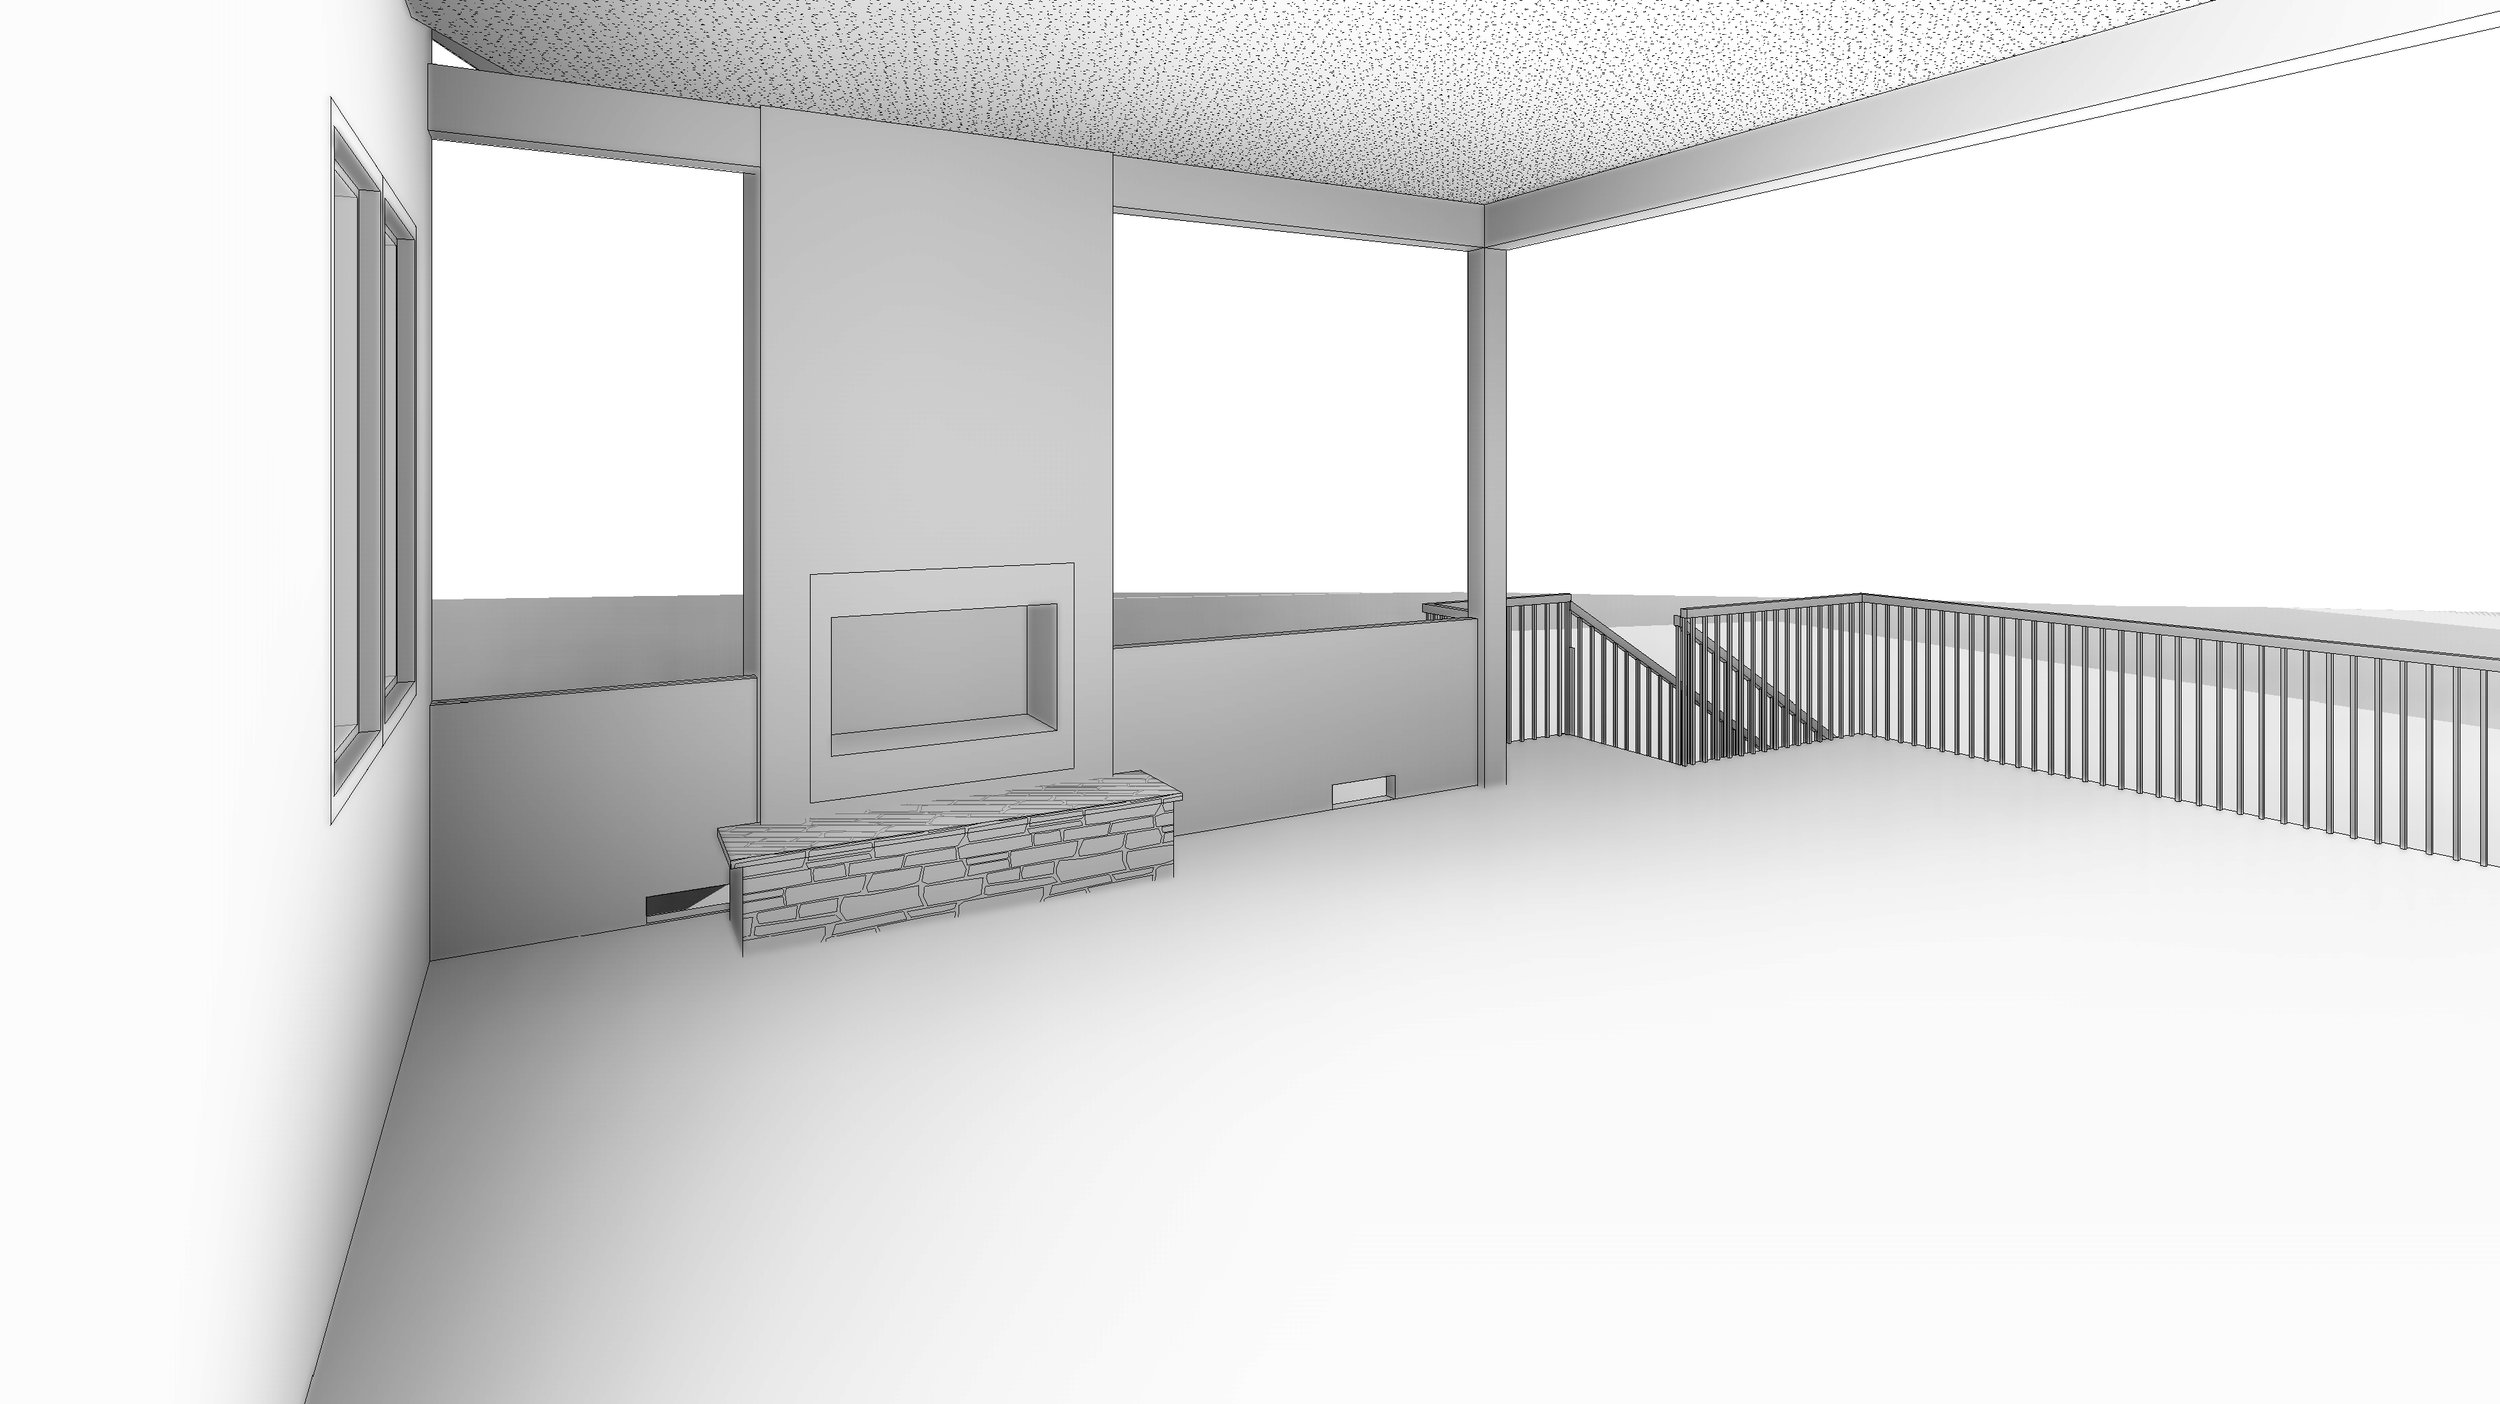 Sanchez Residence_21 - 3D View - DECK & COVERED PATIO 2.jpg